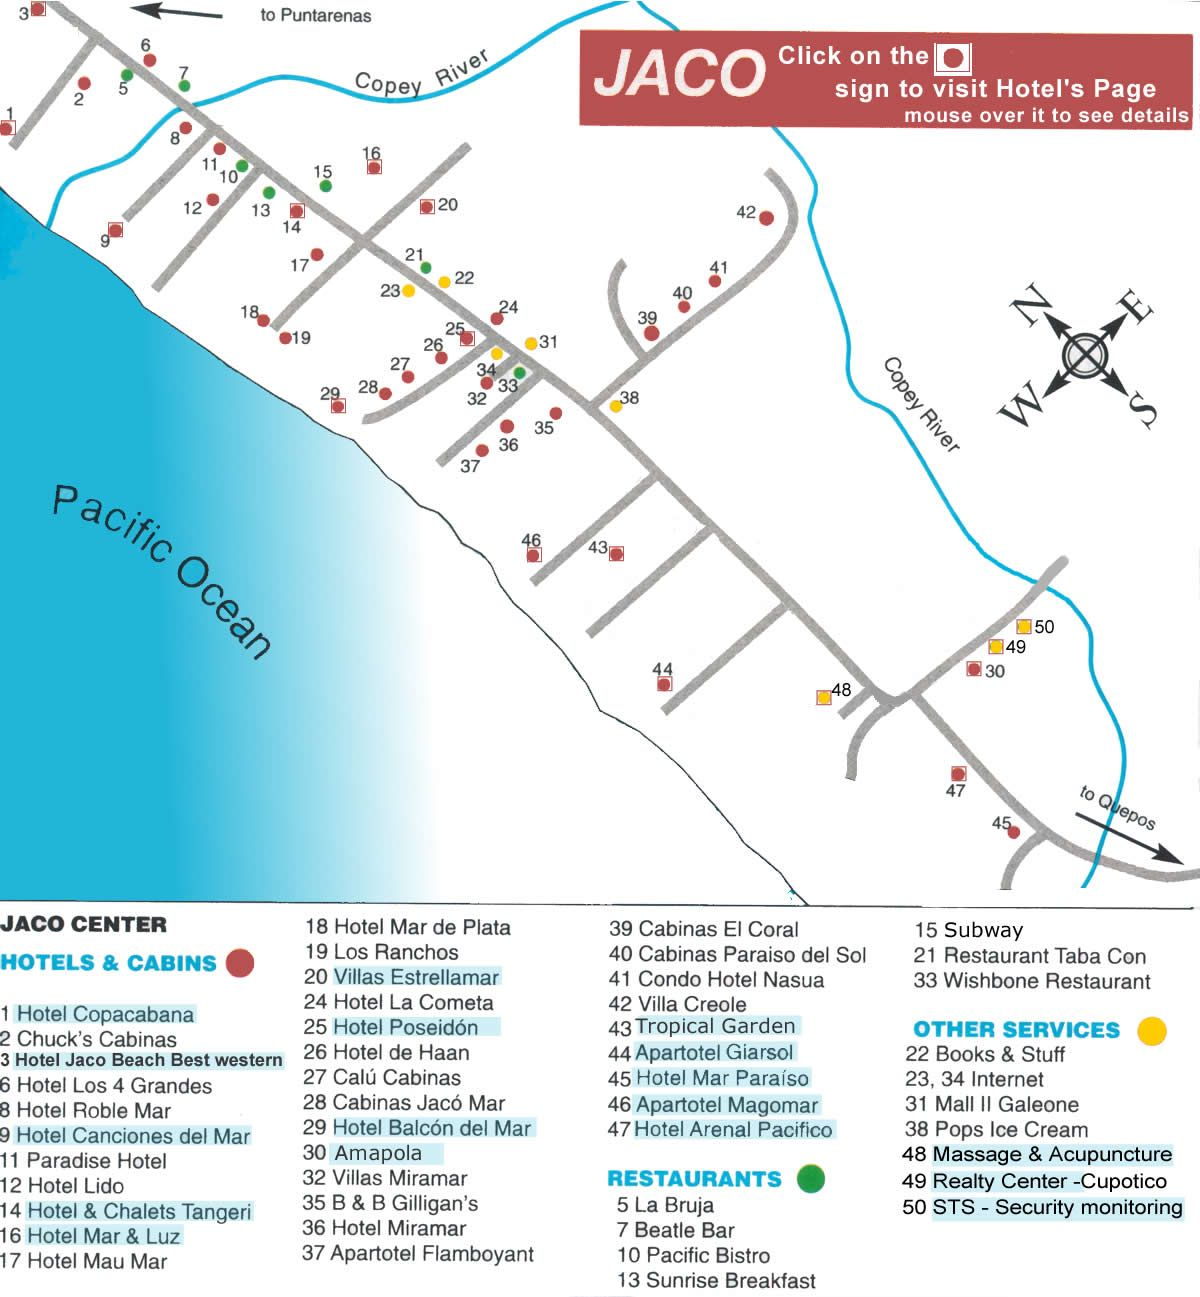 map of jaco costa rica Jaco Map Costa Rica Maps With Hotels Navigation Costa Rica Hotel Costa Rica Map map of jaco costa rica